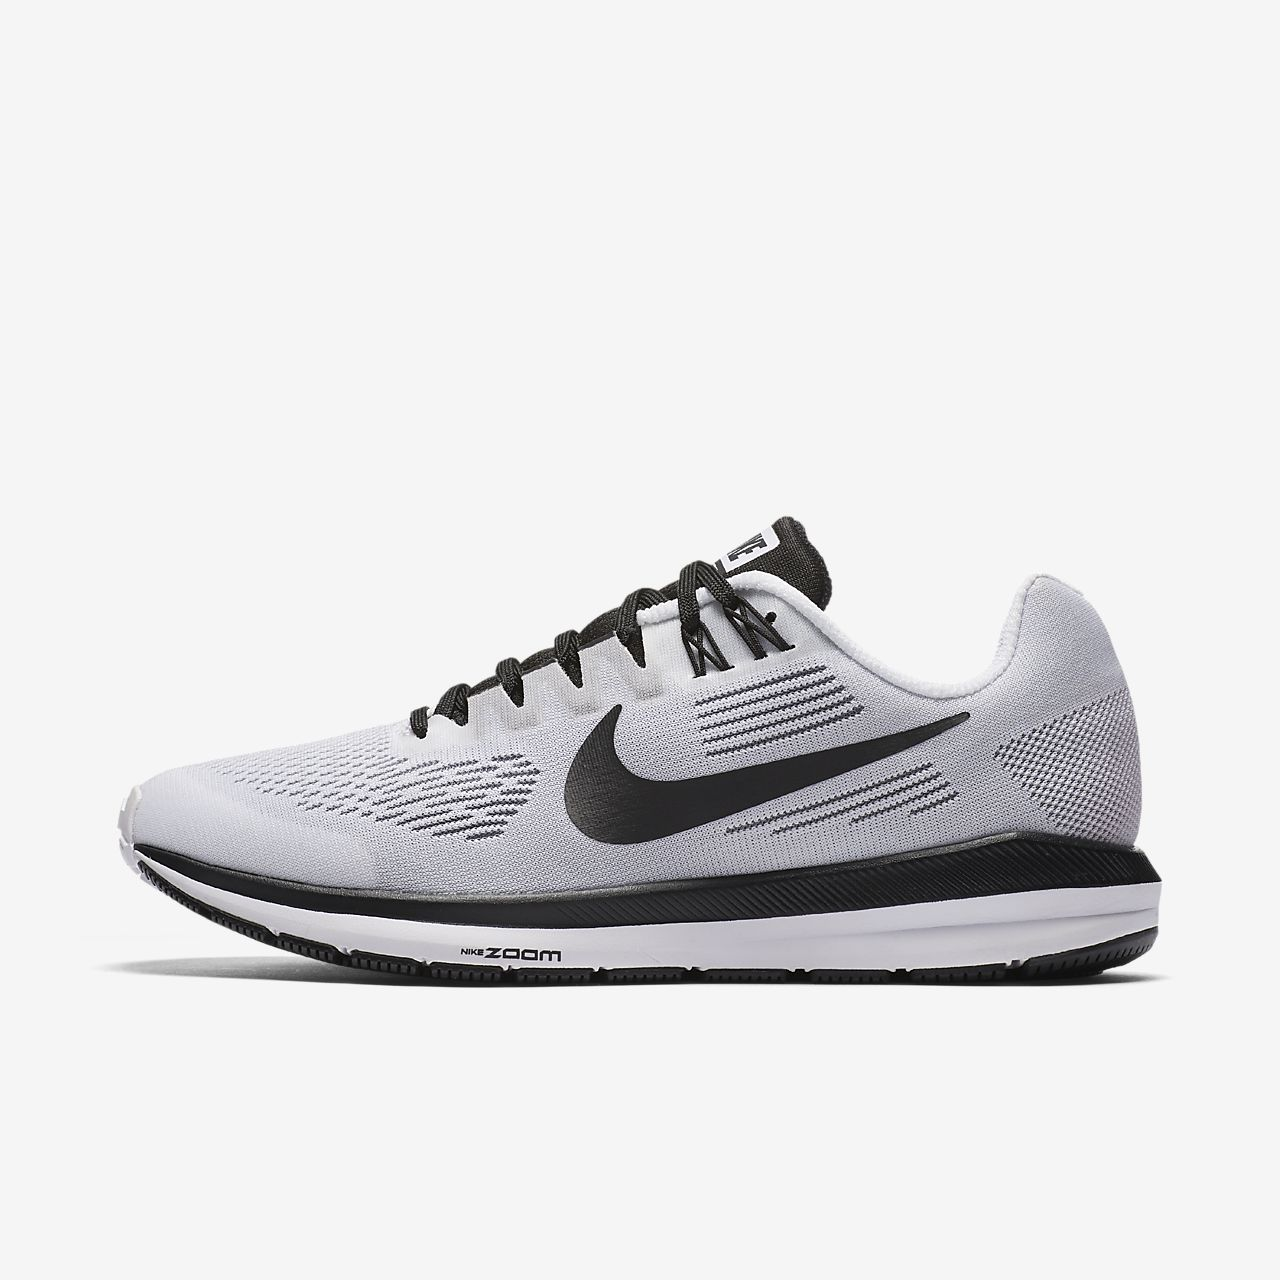 Nike Tiempo Shoes Price In India